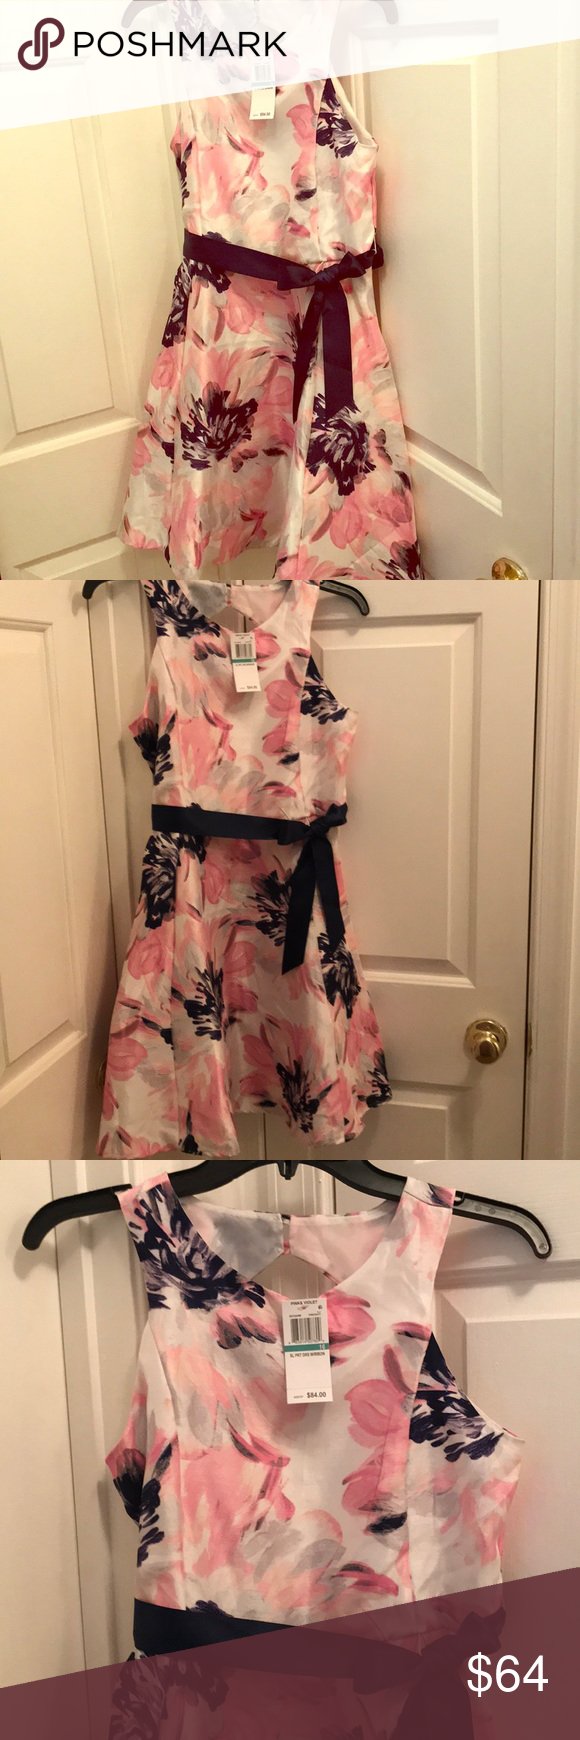 Brand New Never Worn With Tags Formal Girls Dress Purple And Violet Flowers On The Formal Girls Dress Size Girls Formal Dresses Girls Dresses Size 16 Dresses [ 1740 x 580 Pixel ]